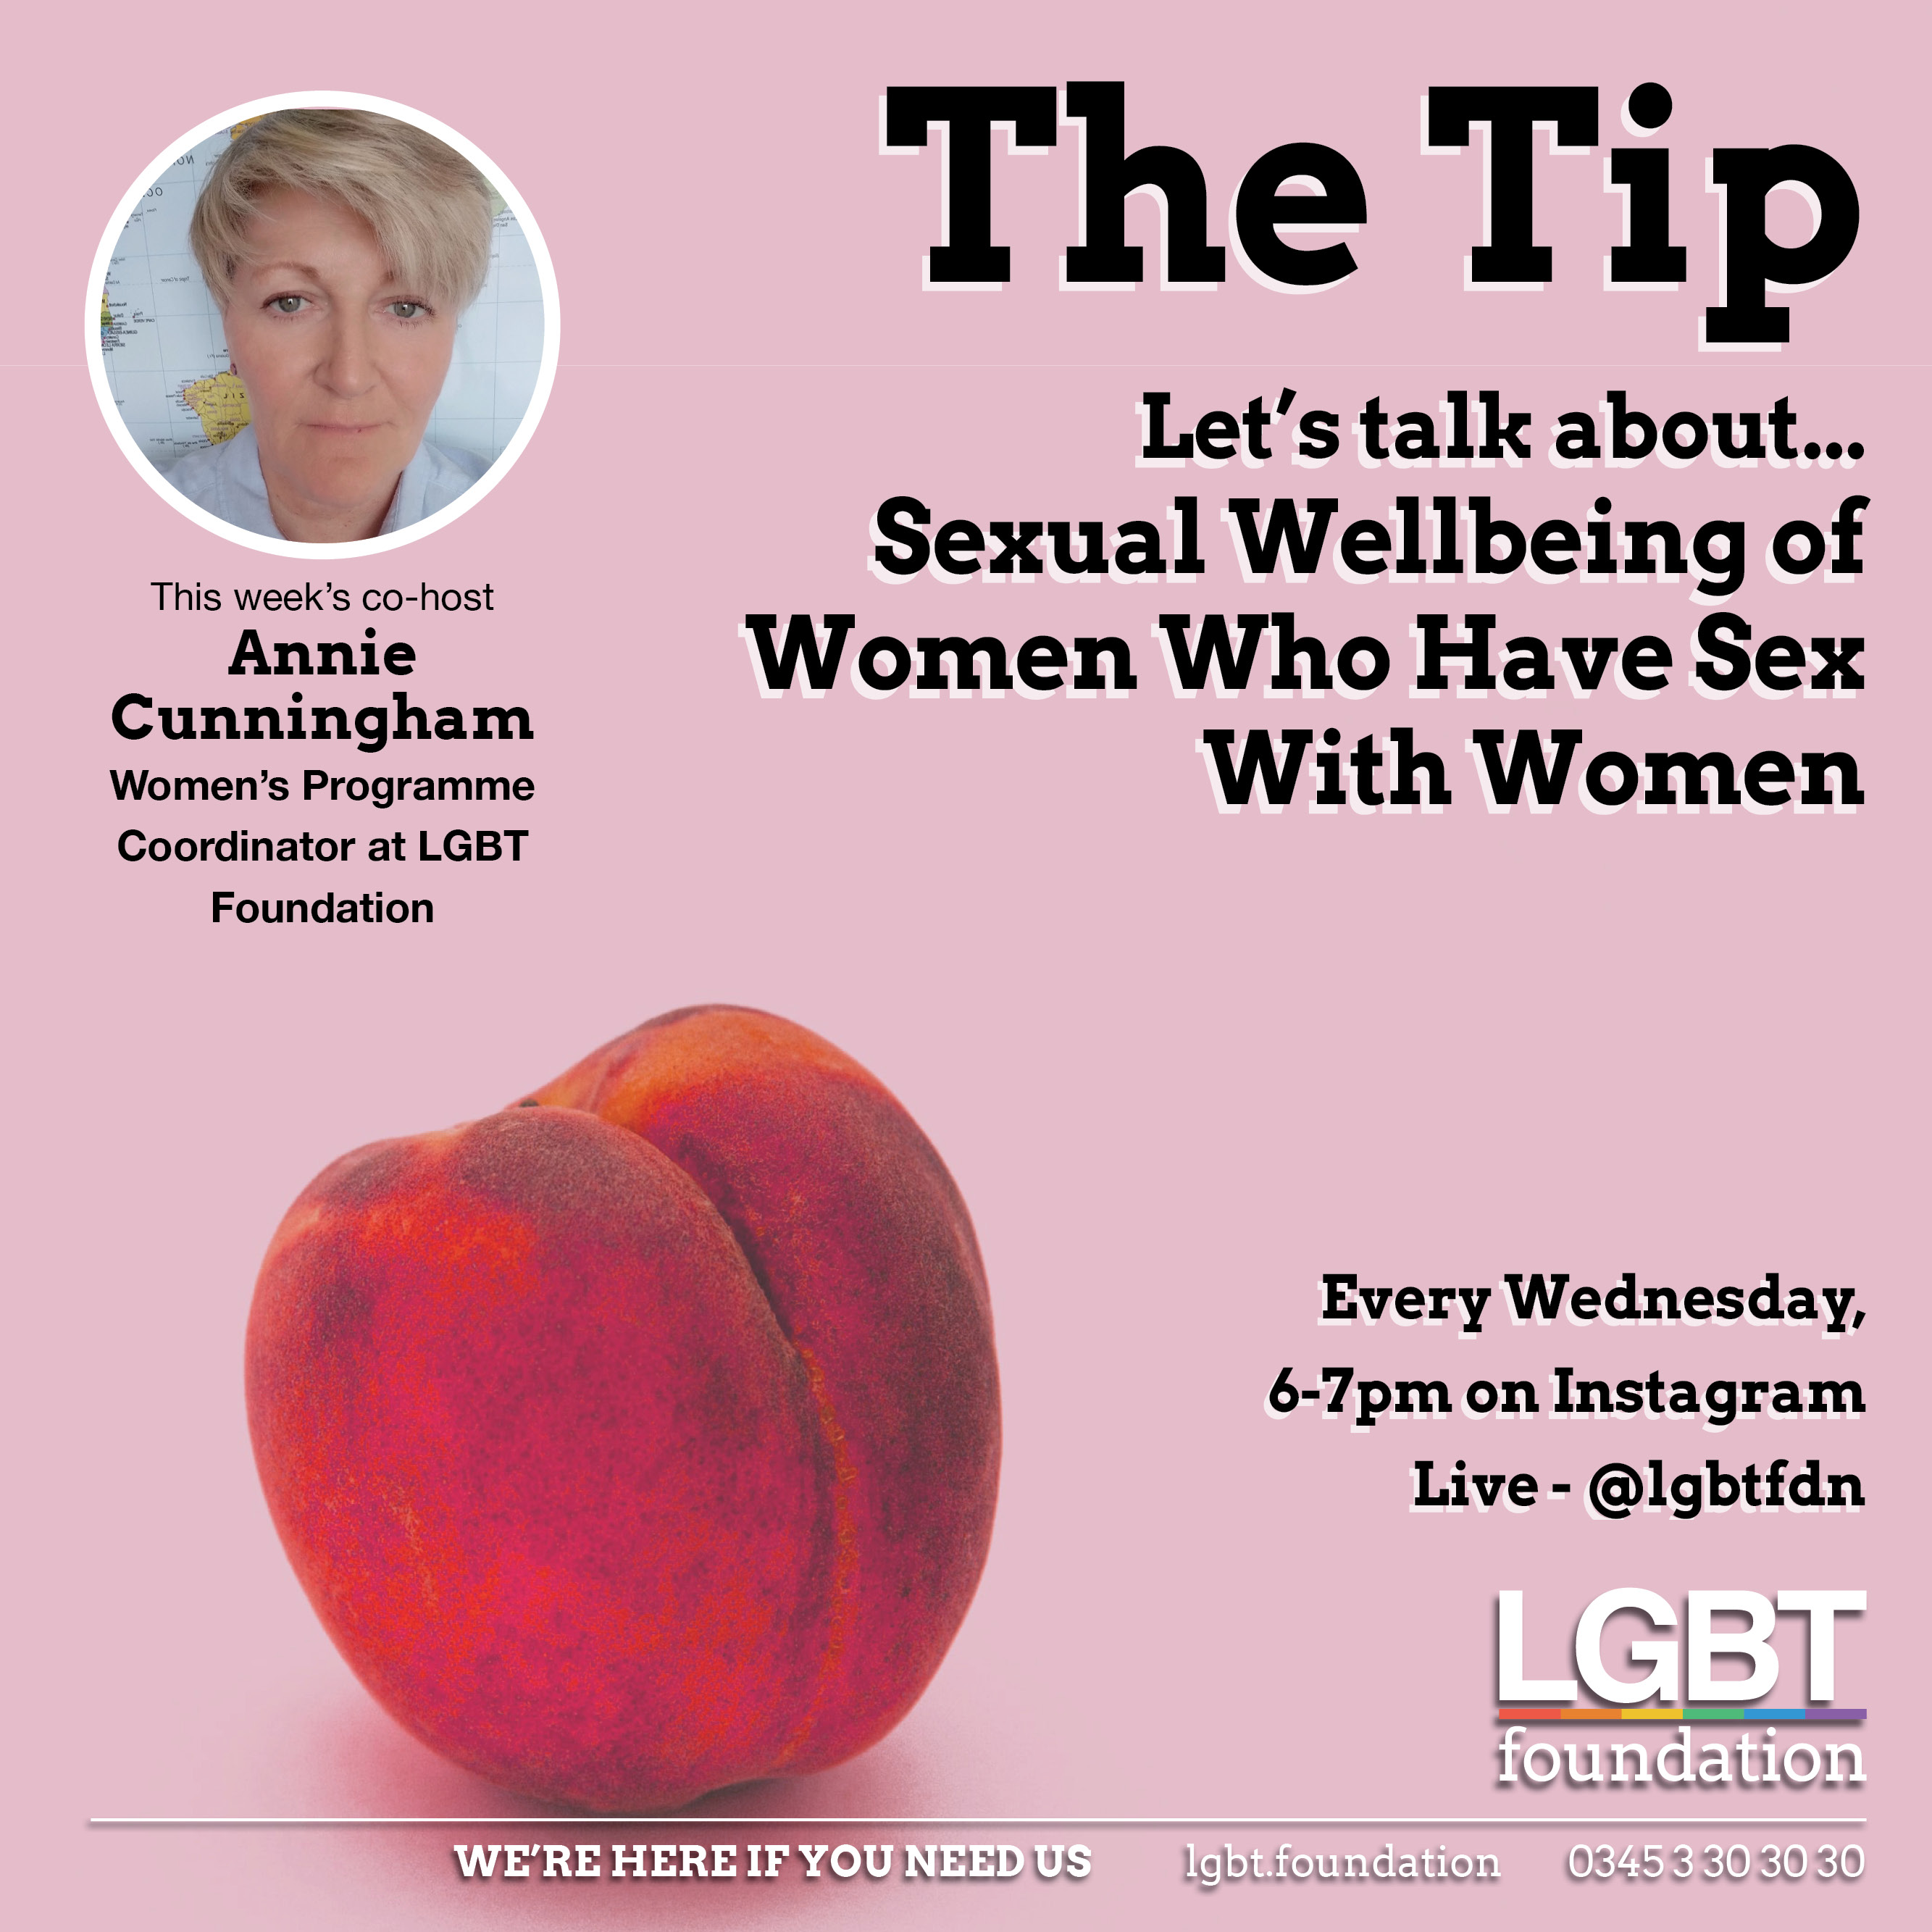 The Tip - Women who have Sex with Women